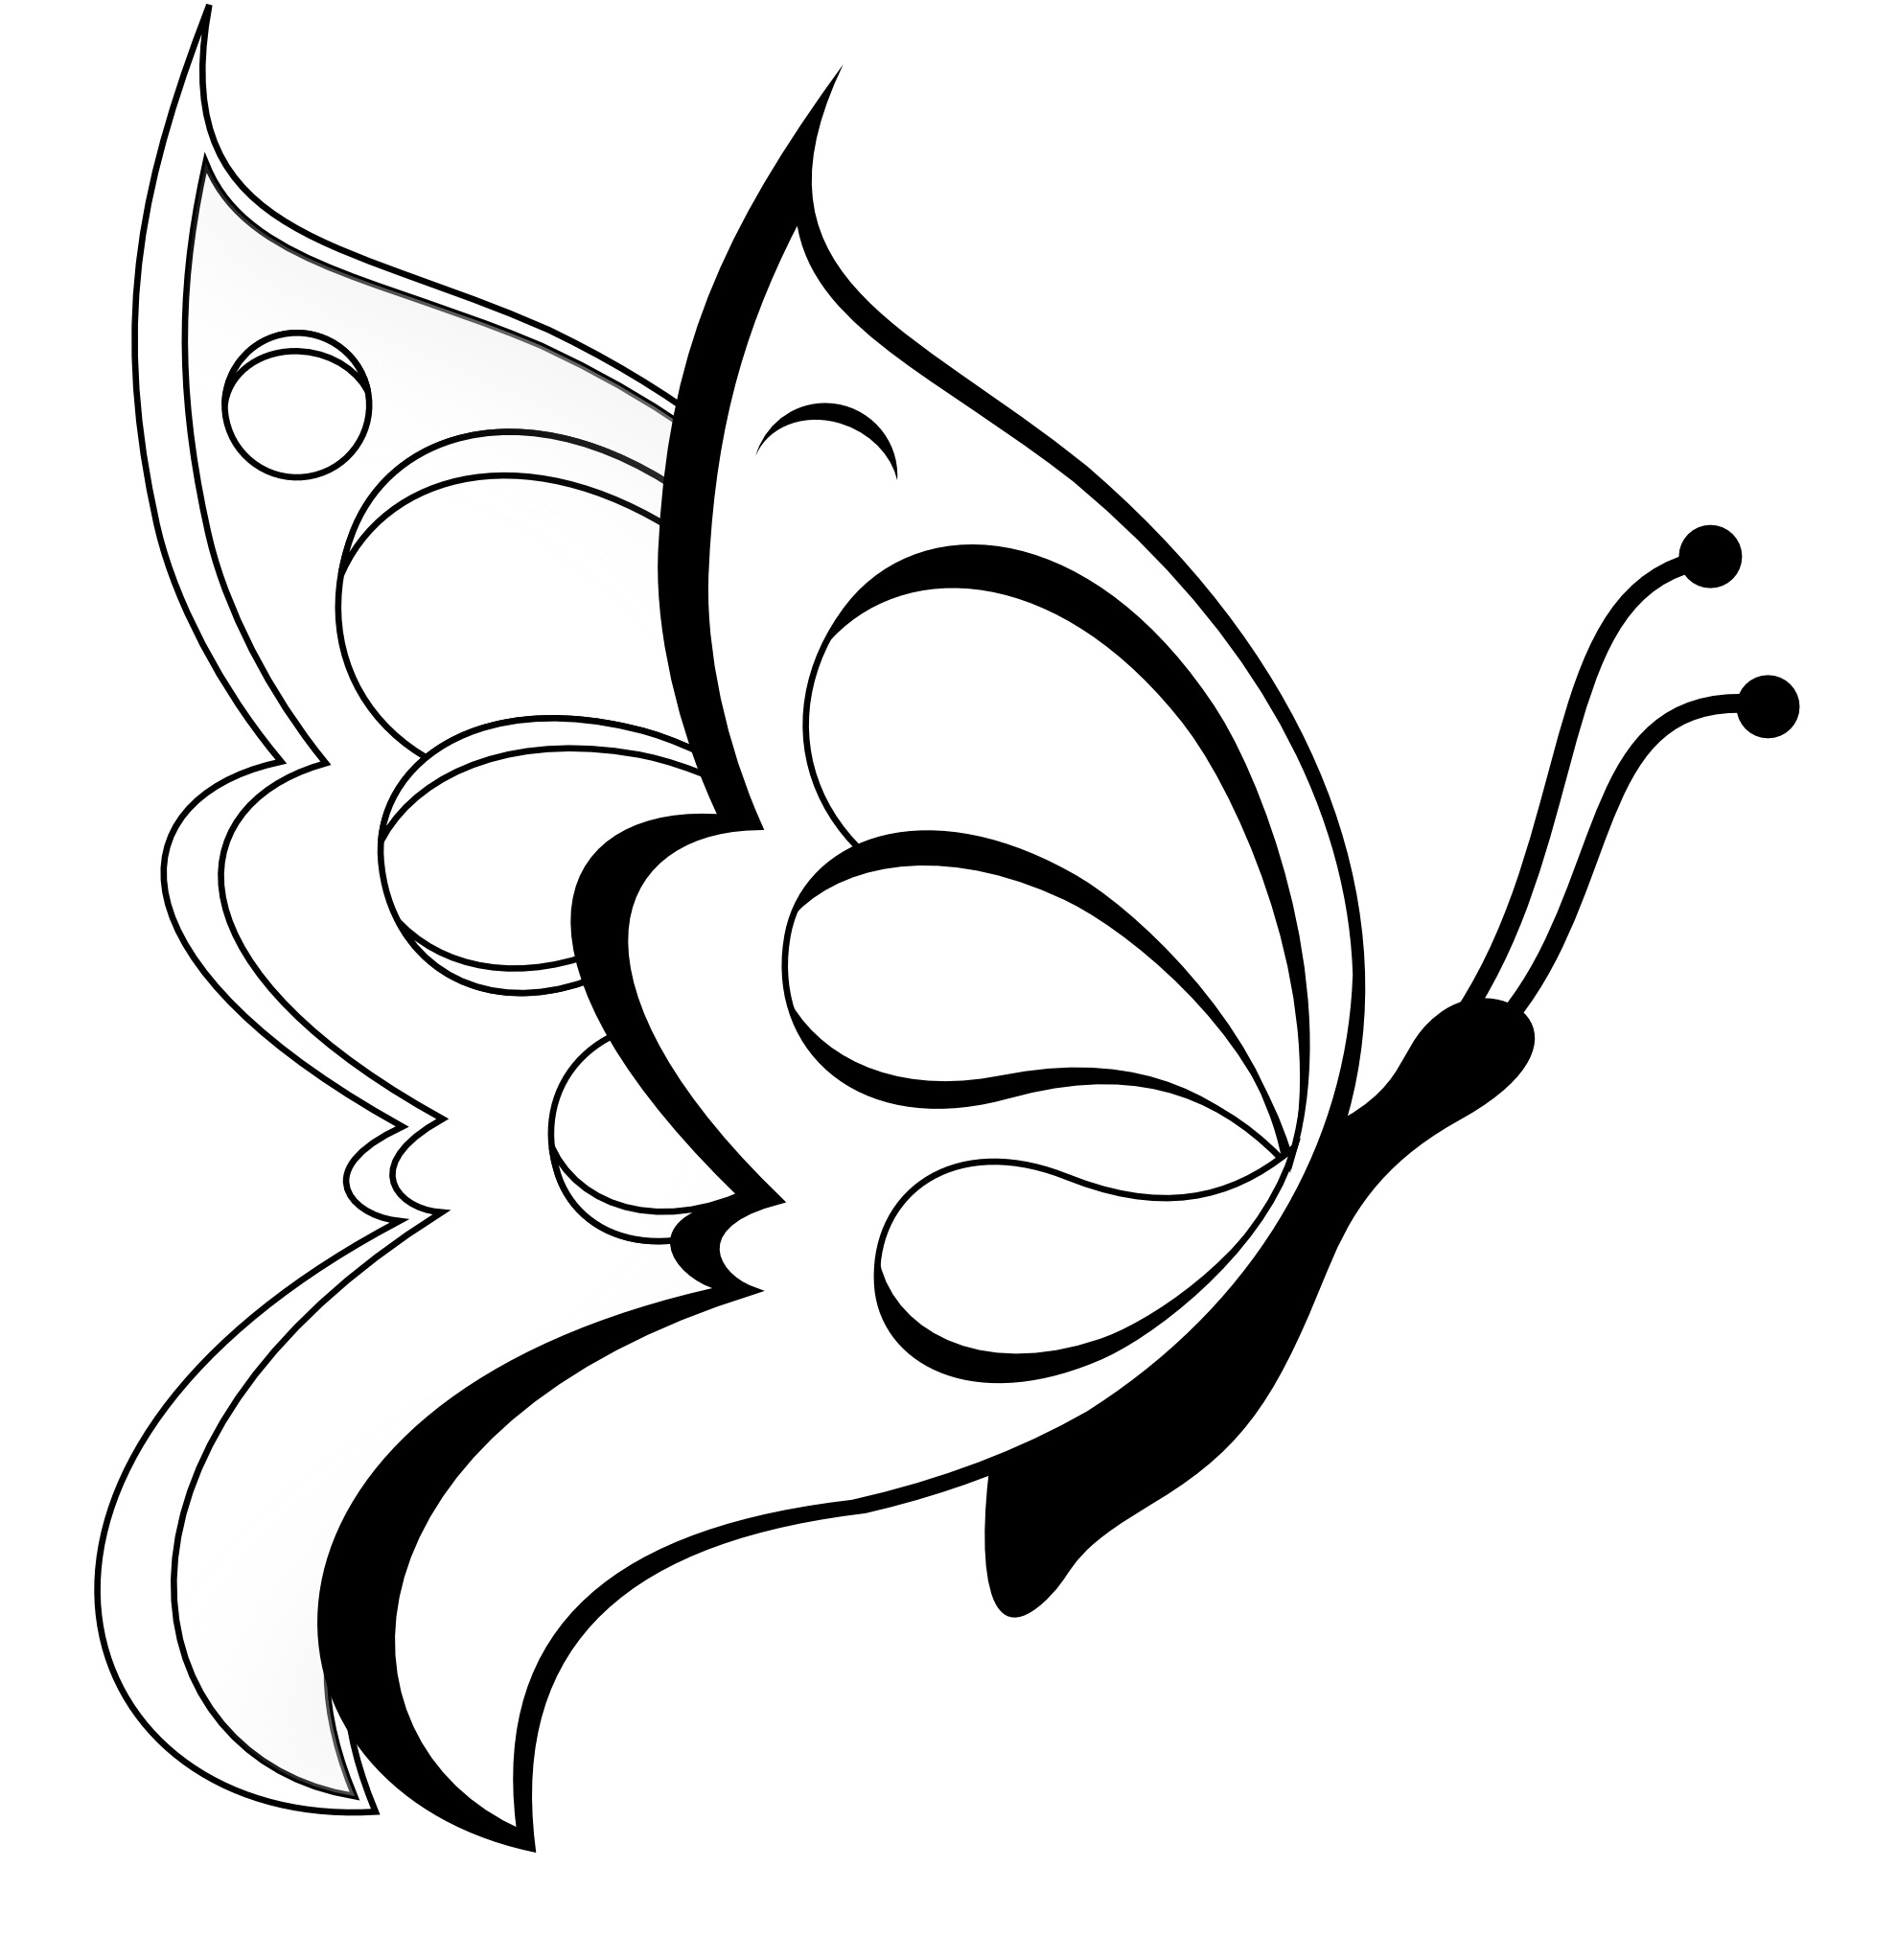 butterfly pictures to color butterfly coloring pages free printable from cute to to butterfly color pictures